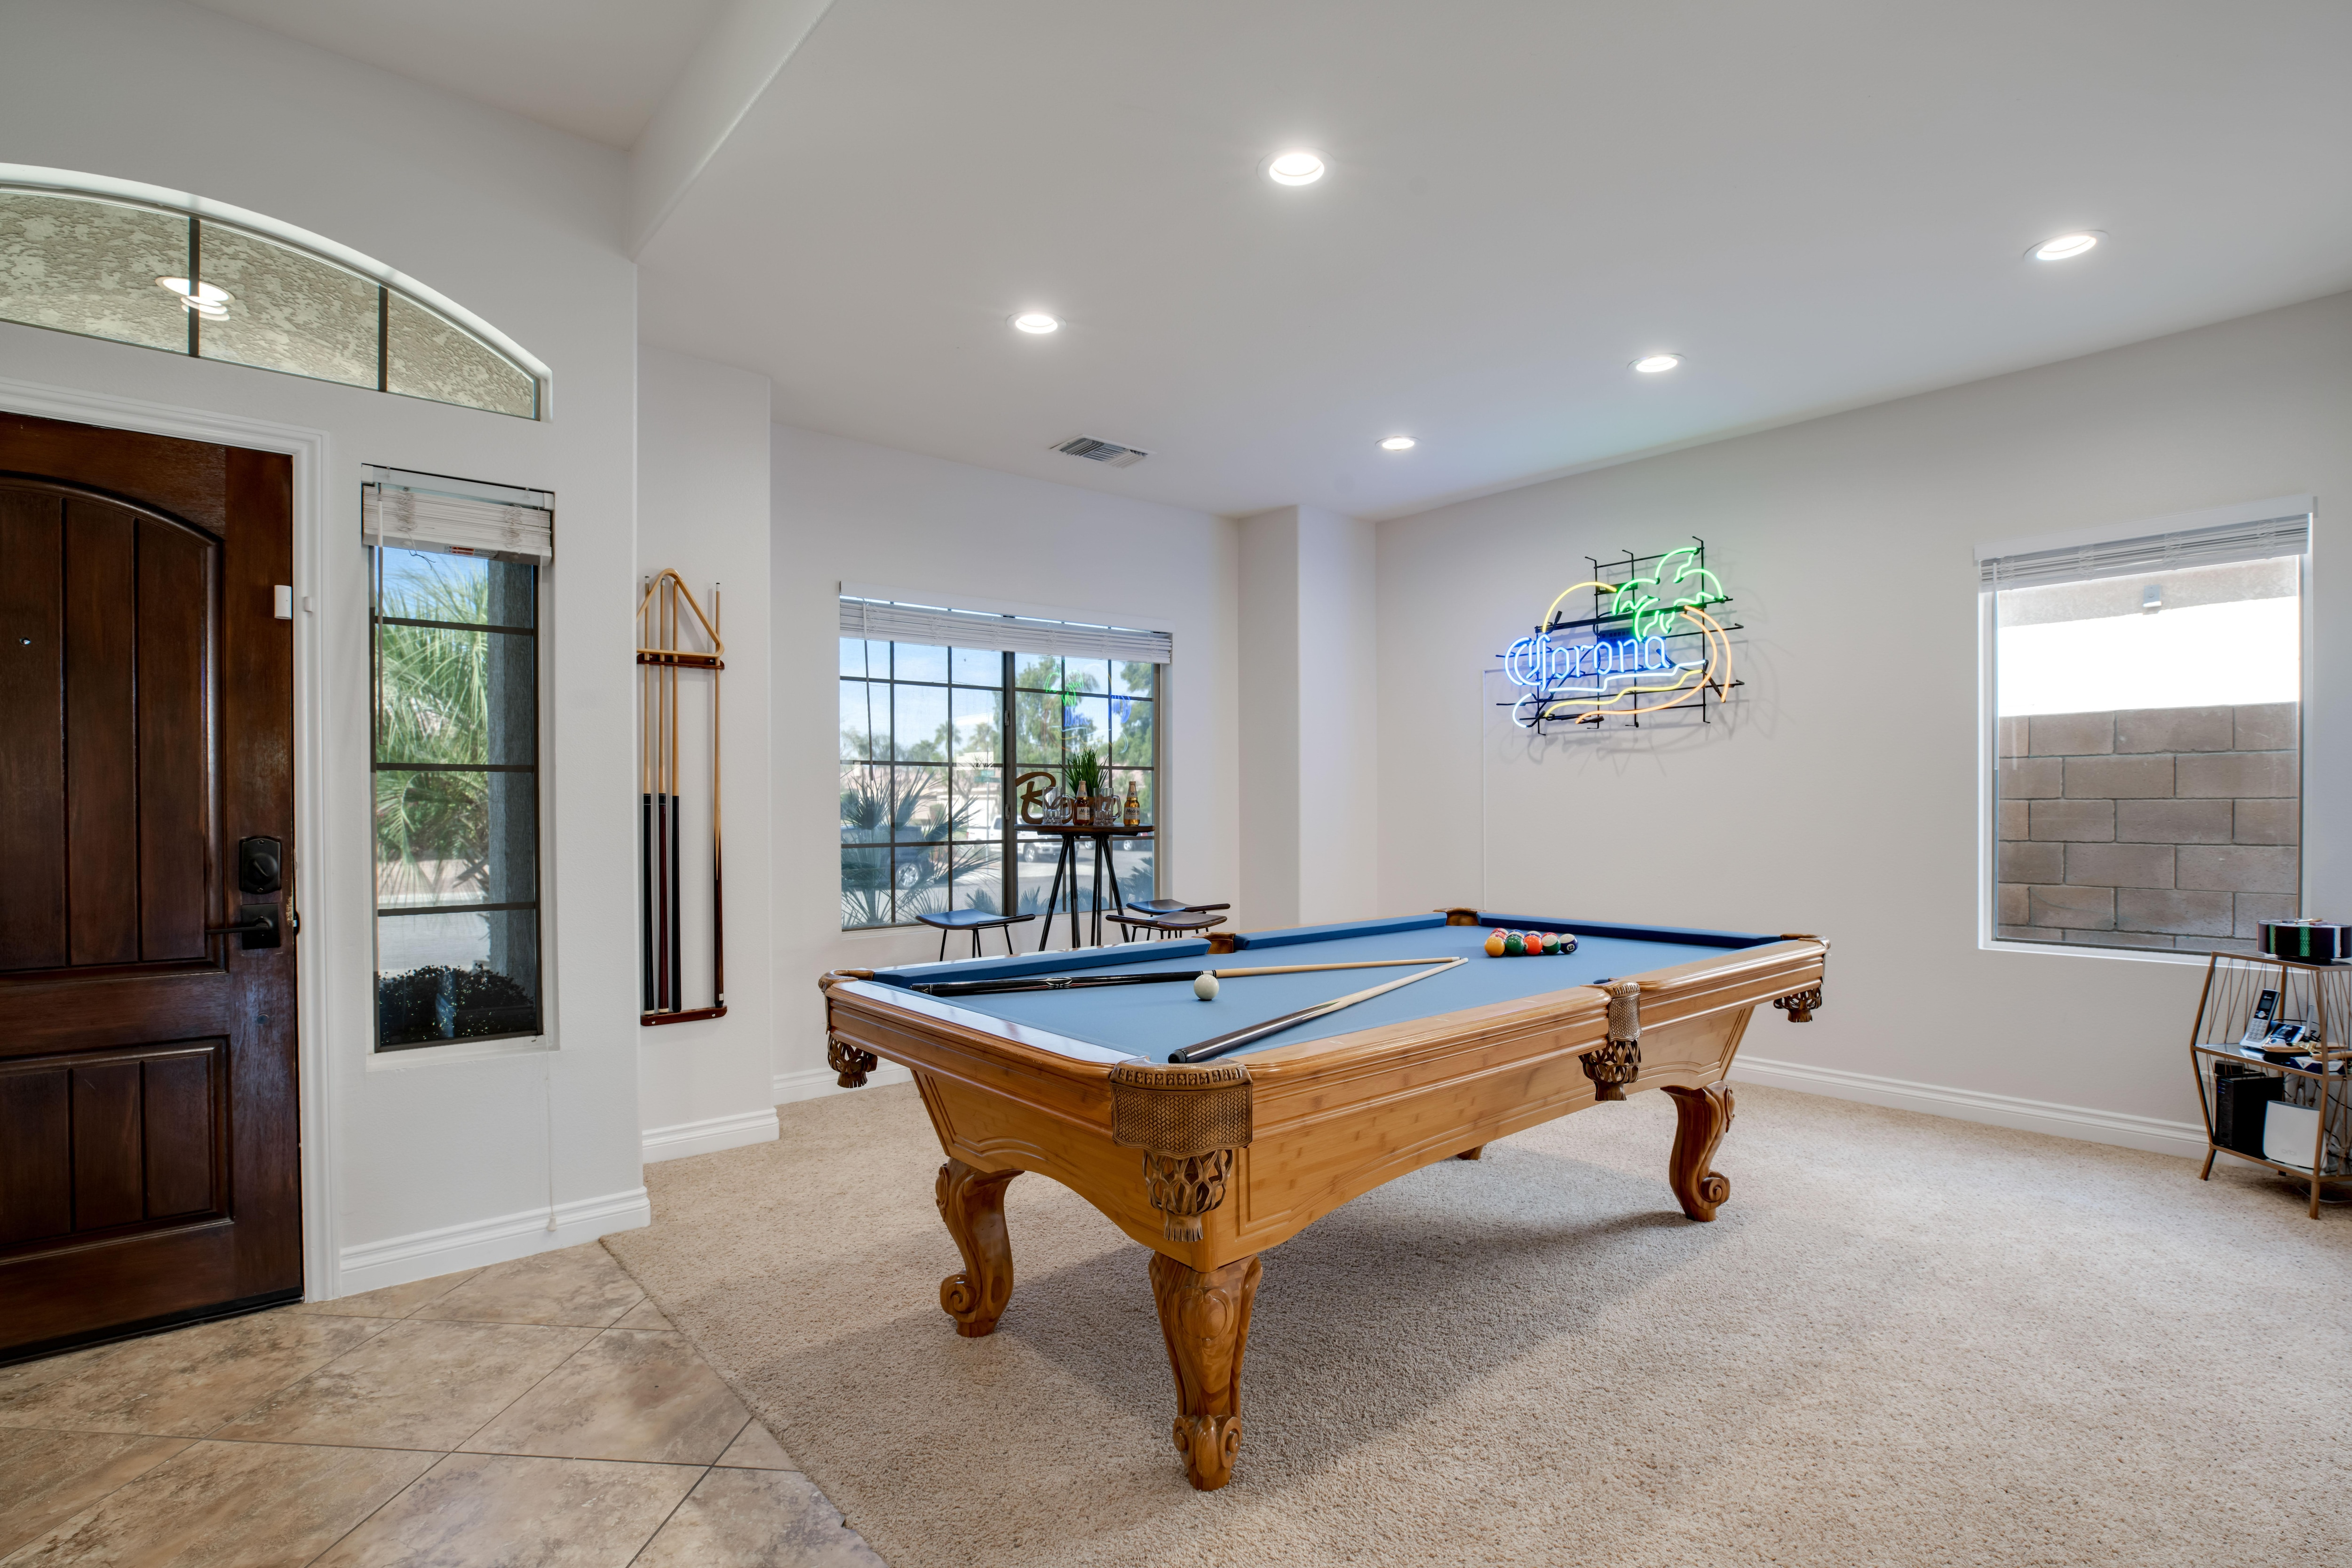 This home features a game room with a pool table.